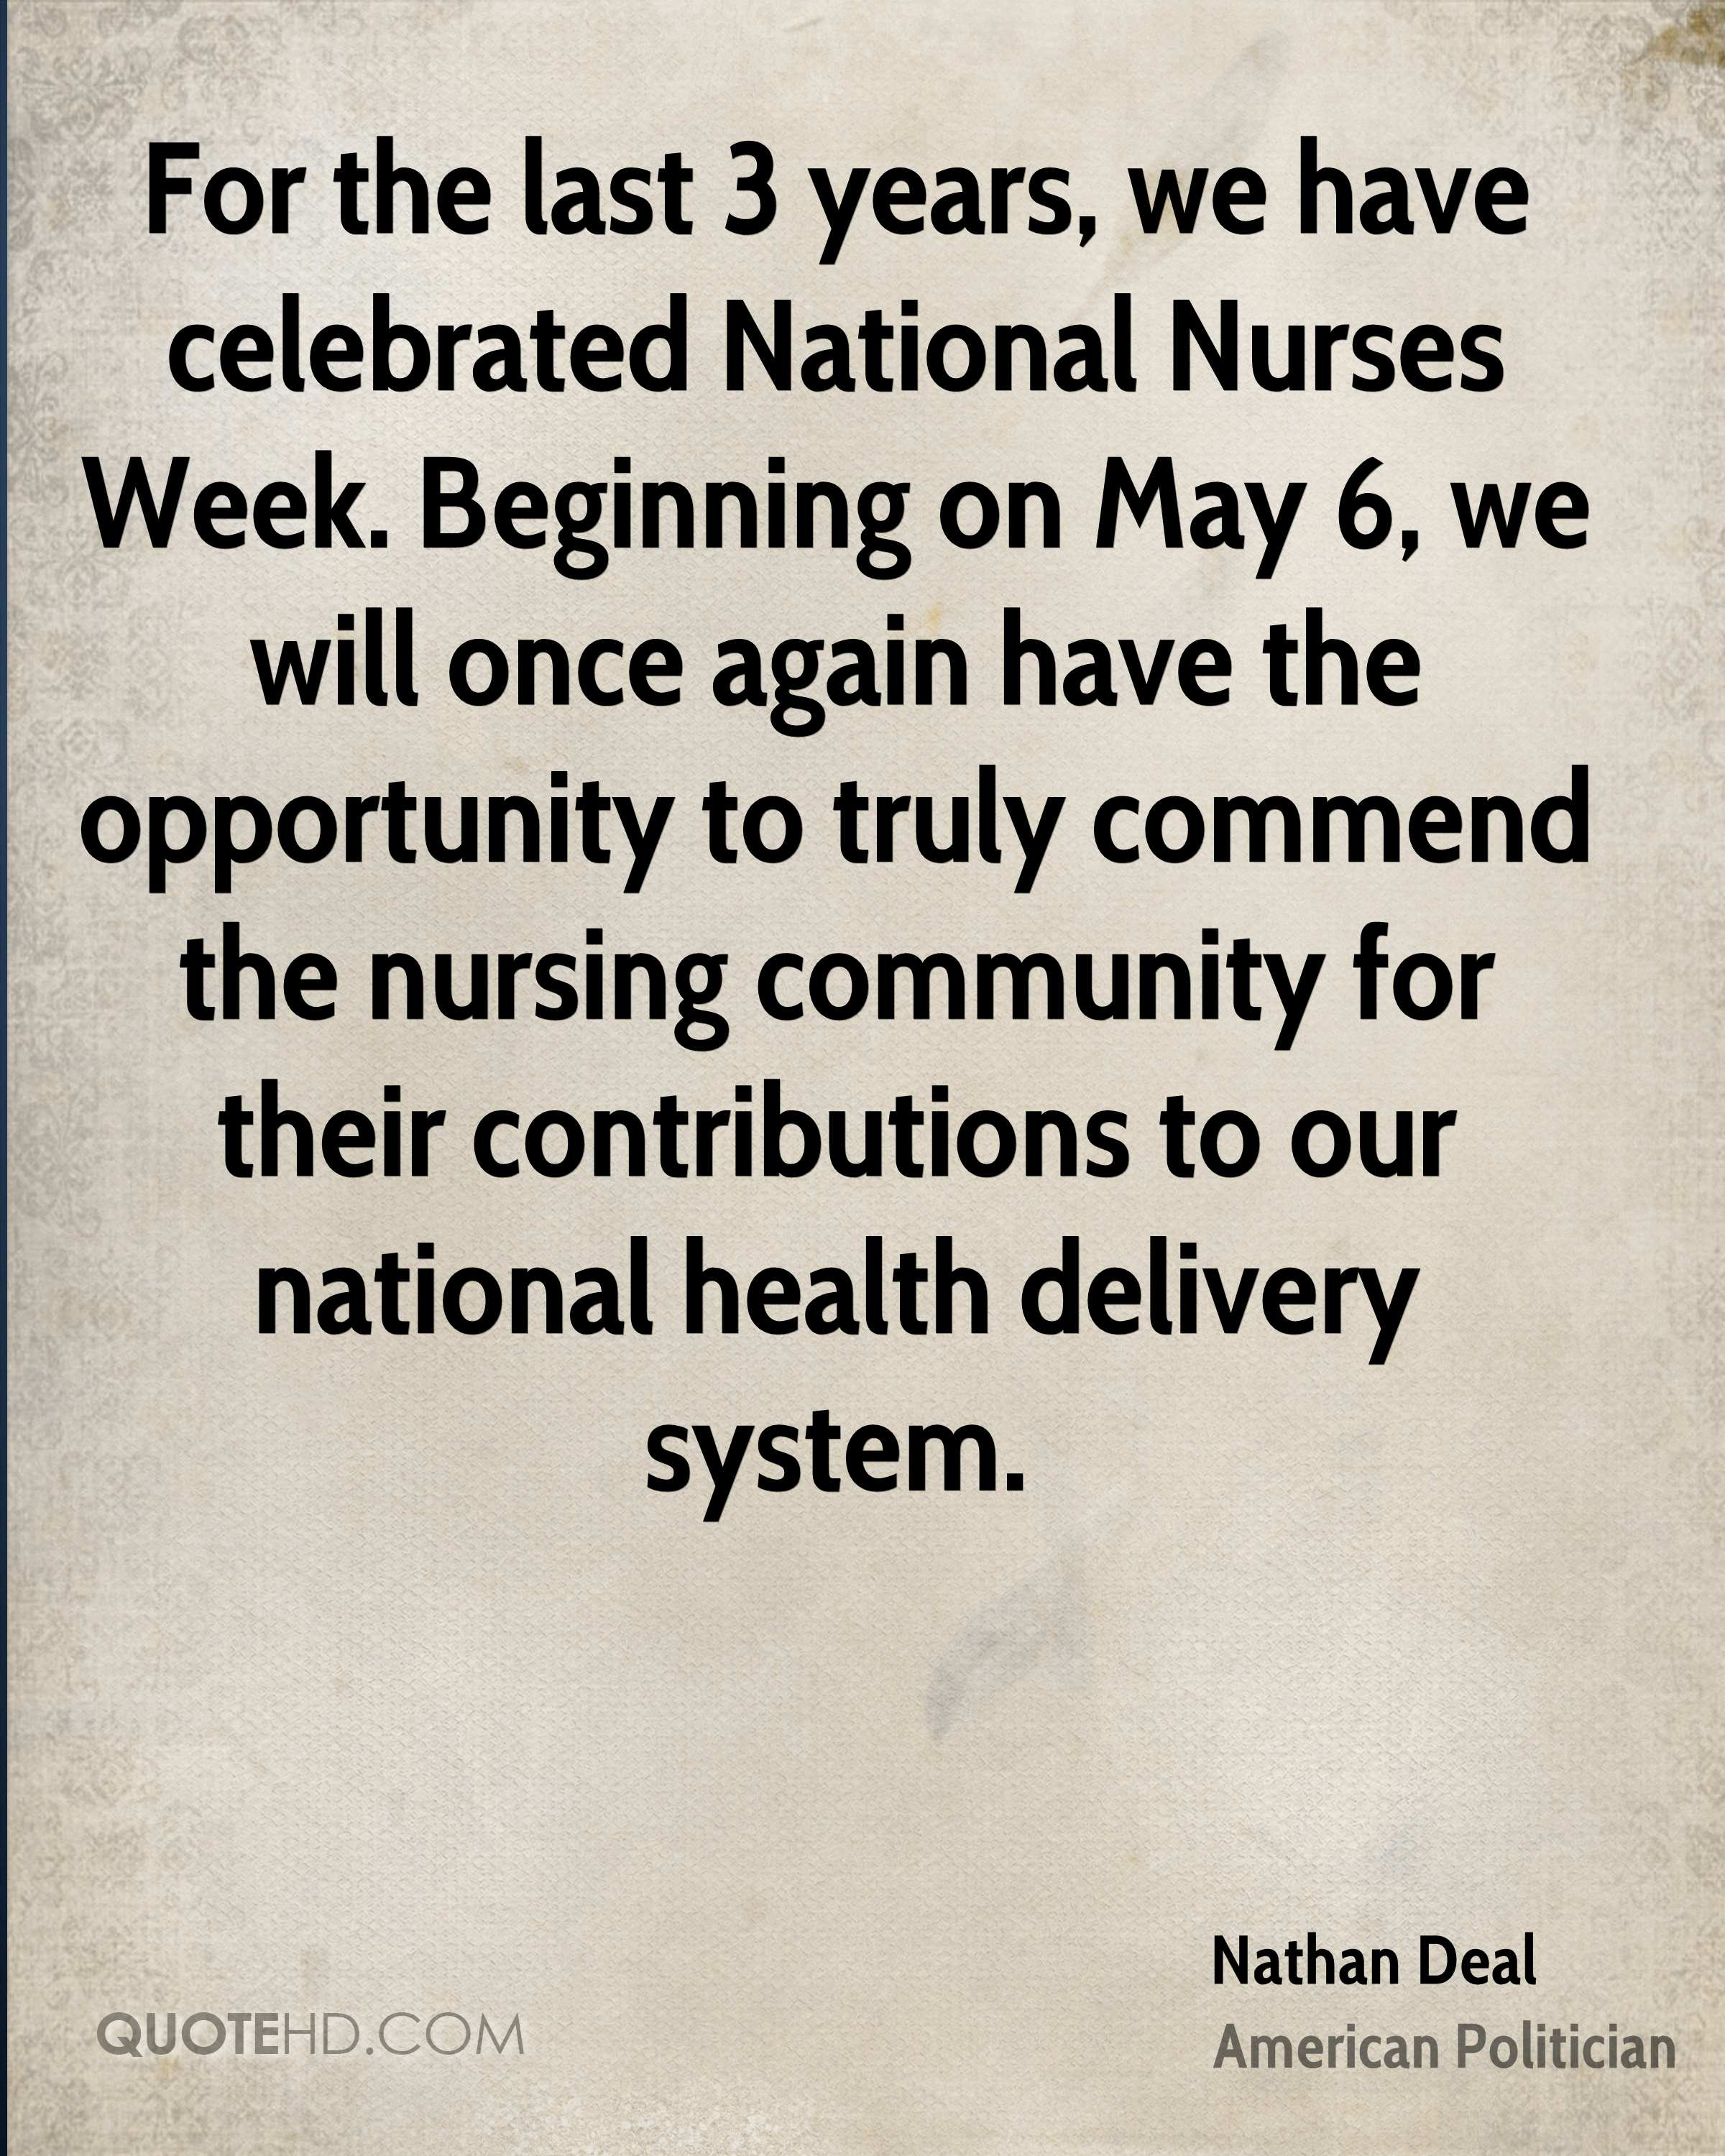 For the last 3 years, we have celebrated National Nurses Week. Beginning on May 6, we will once again have the opportunity to truly commend the nursing community for their contributions to our national health delivery system.